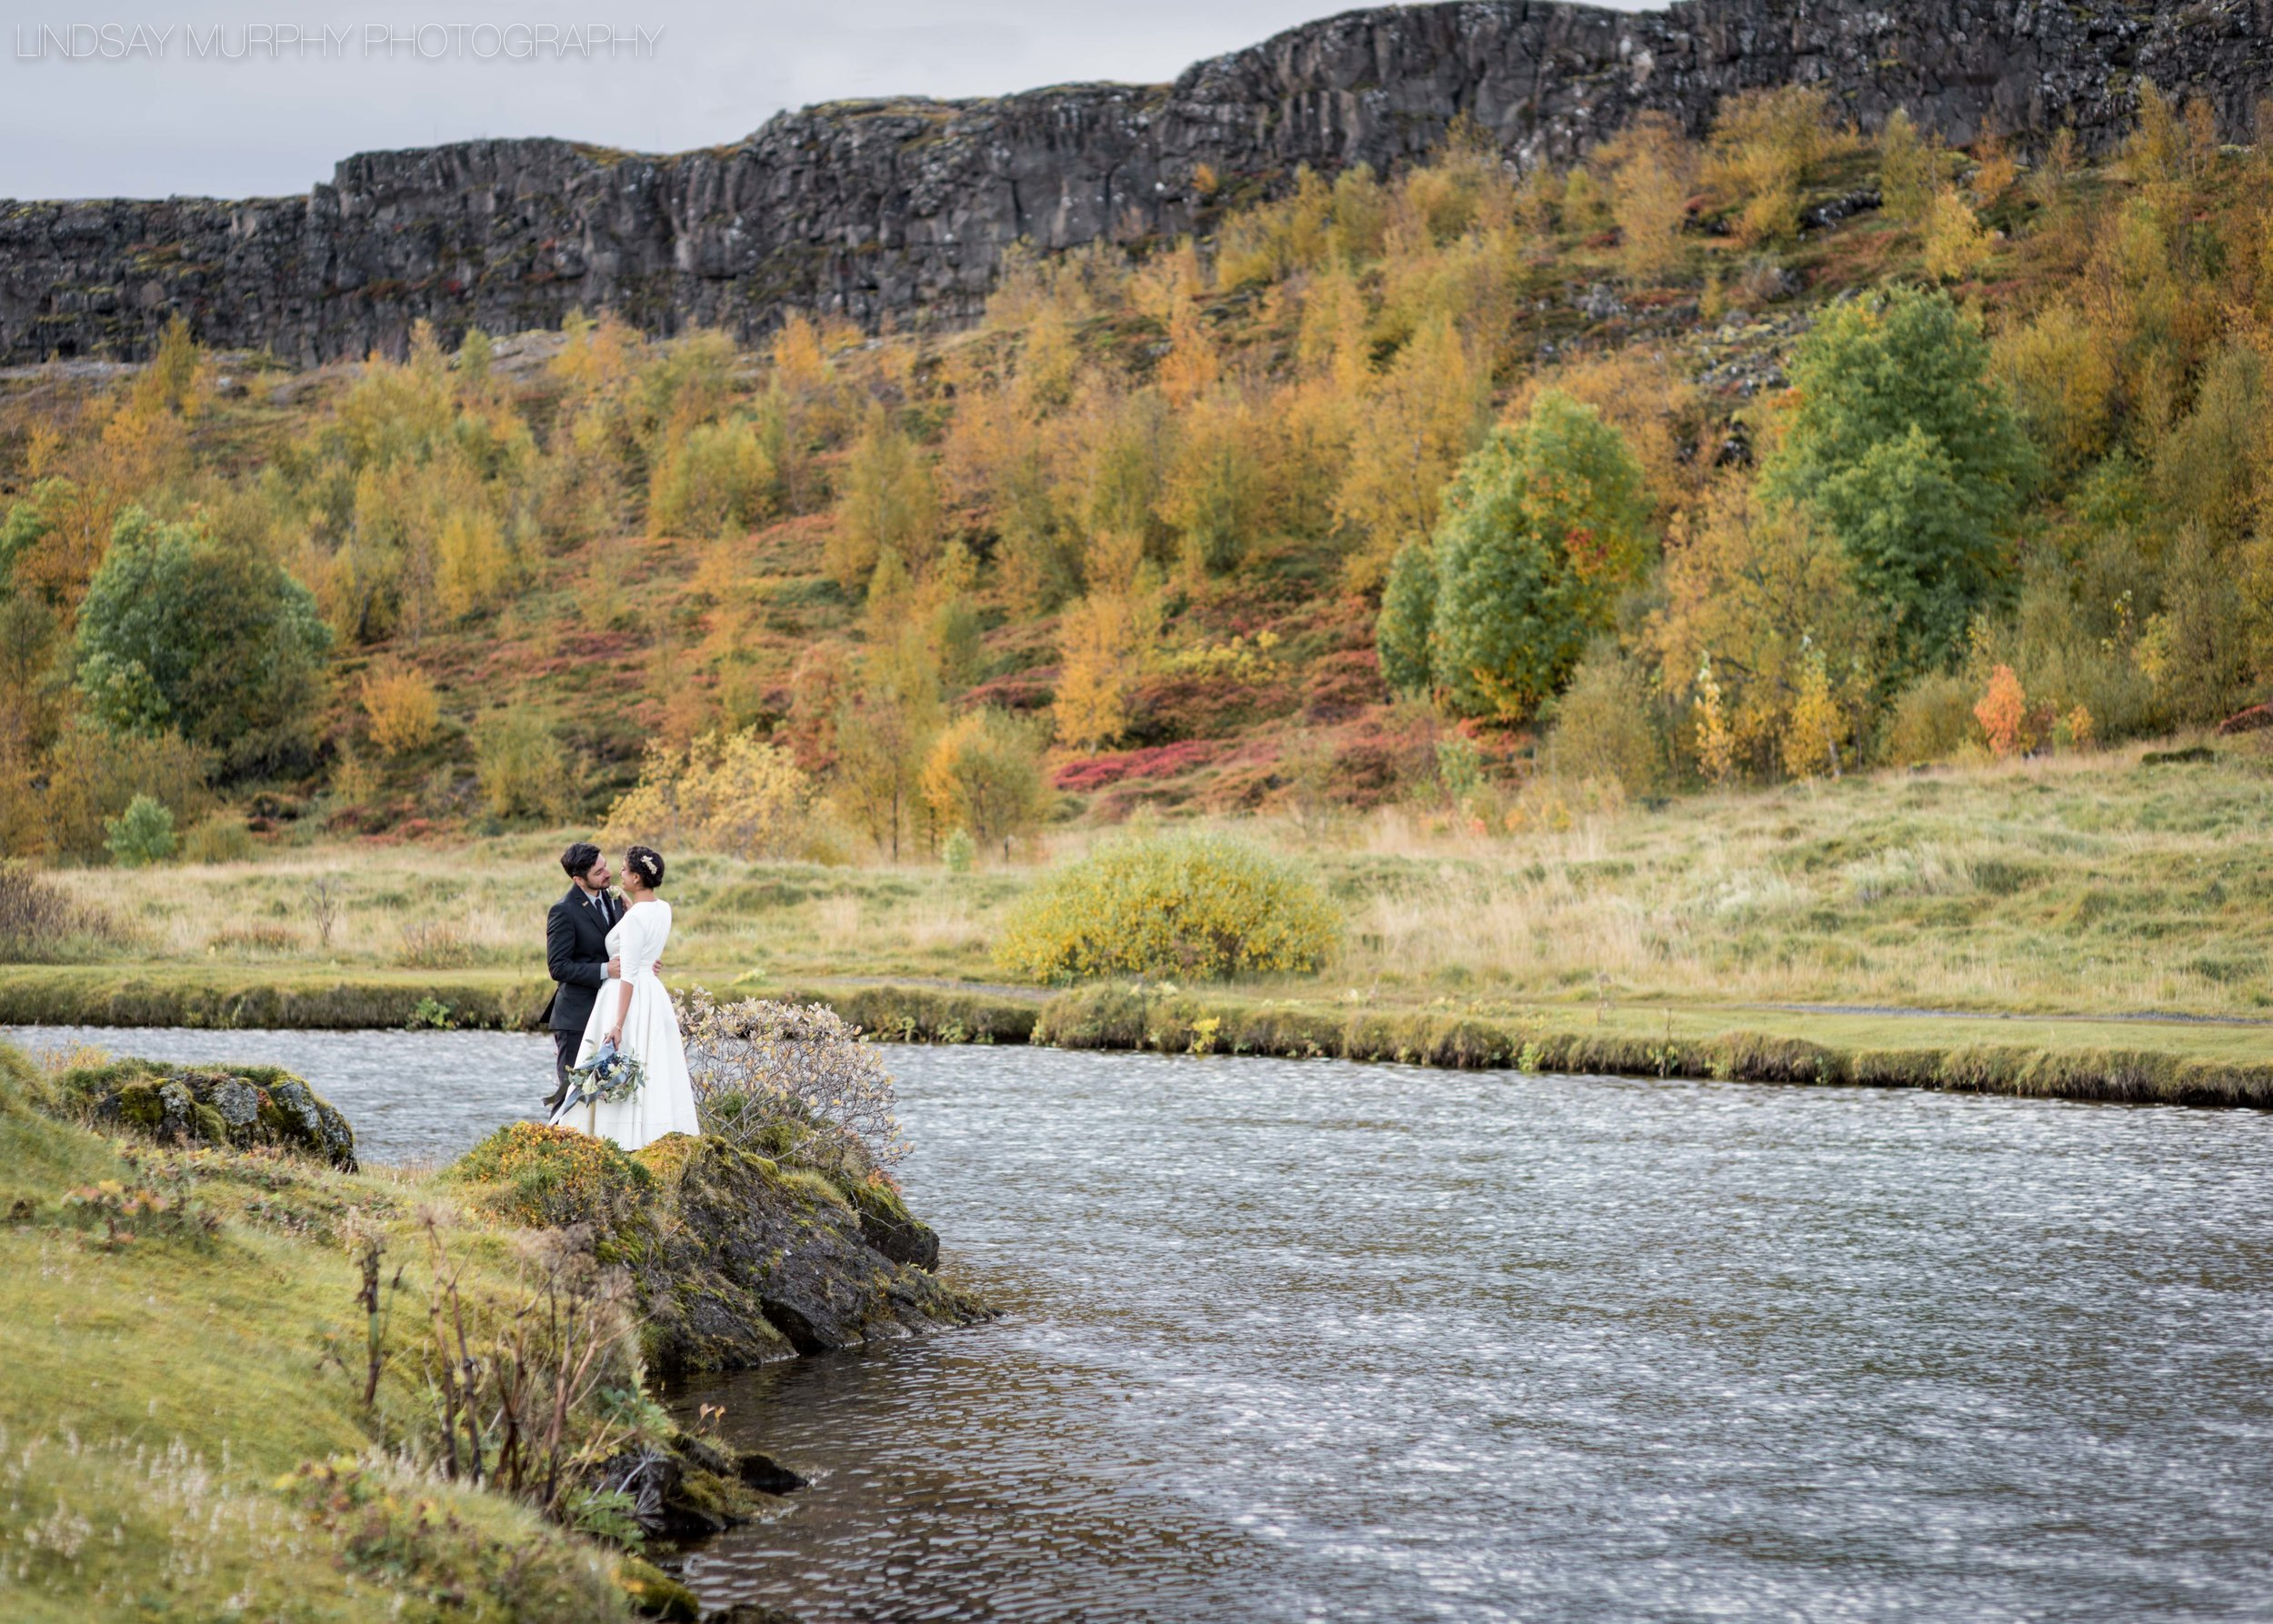 Destination_Iceland_Adventure_Wedding-338.jpg